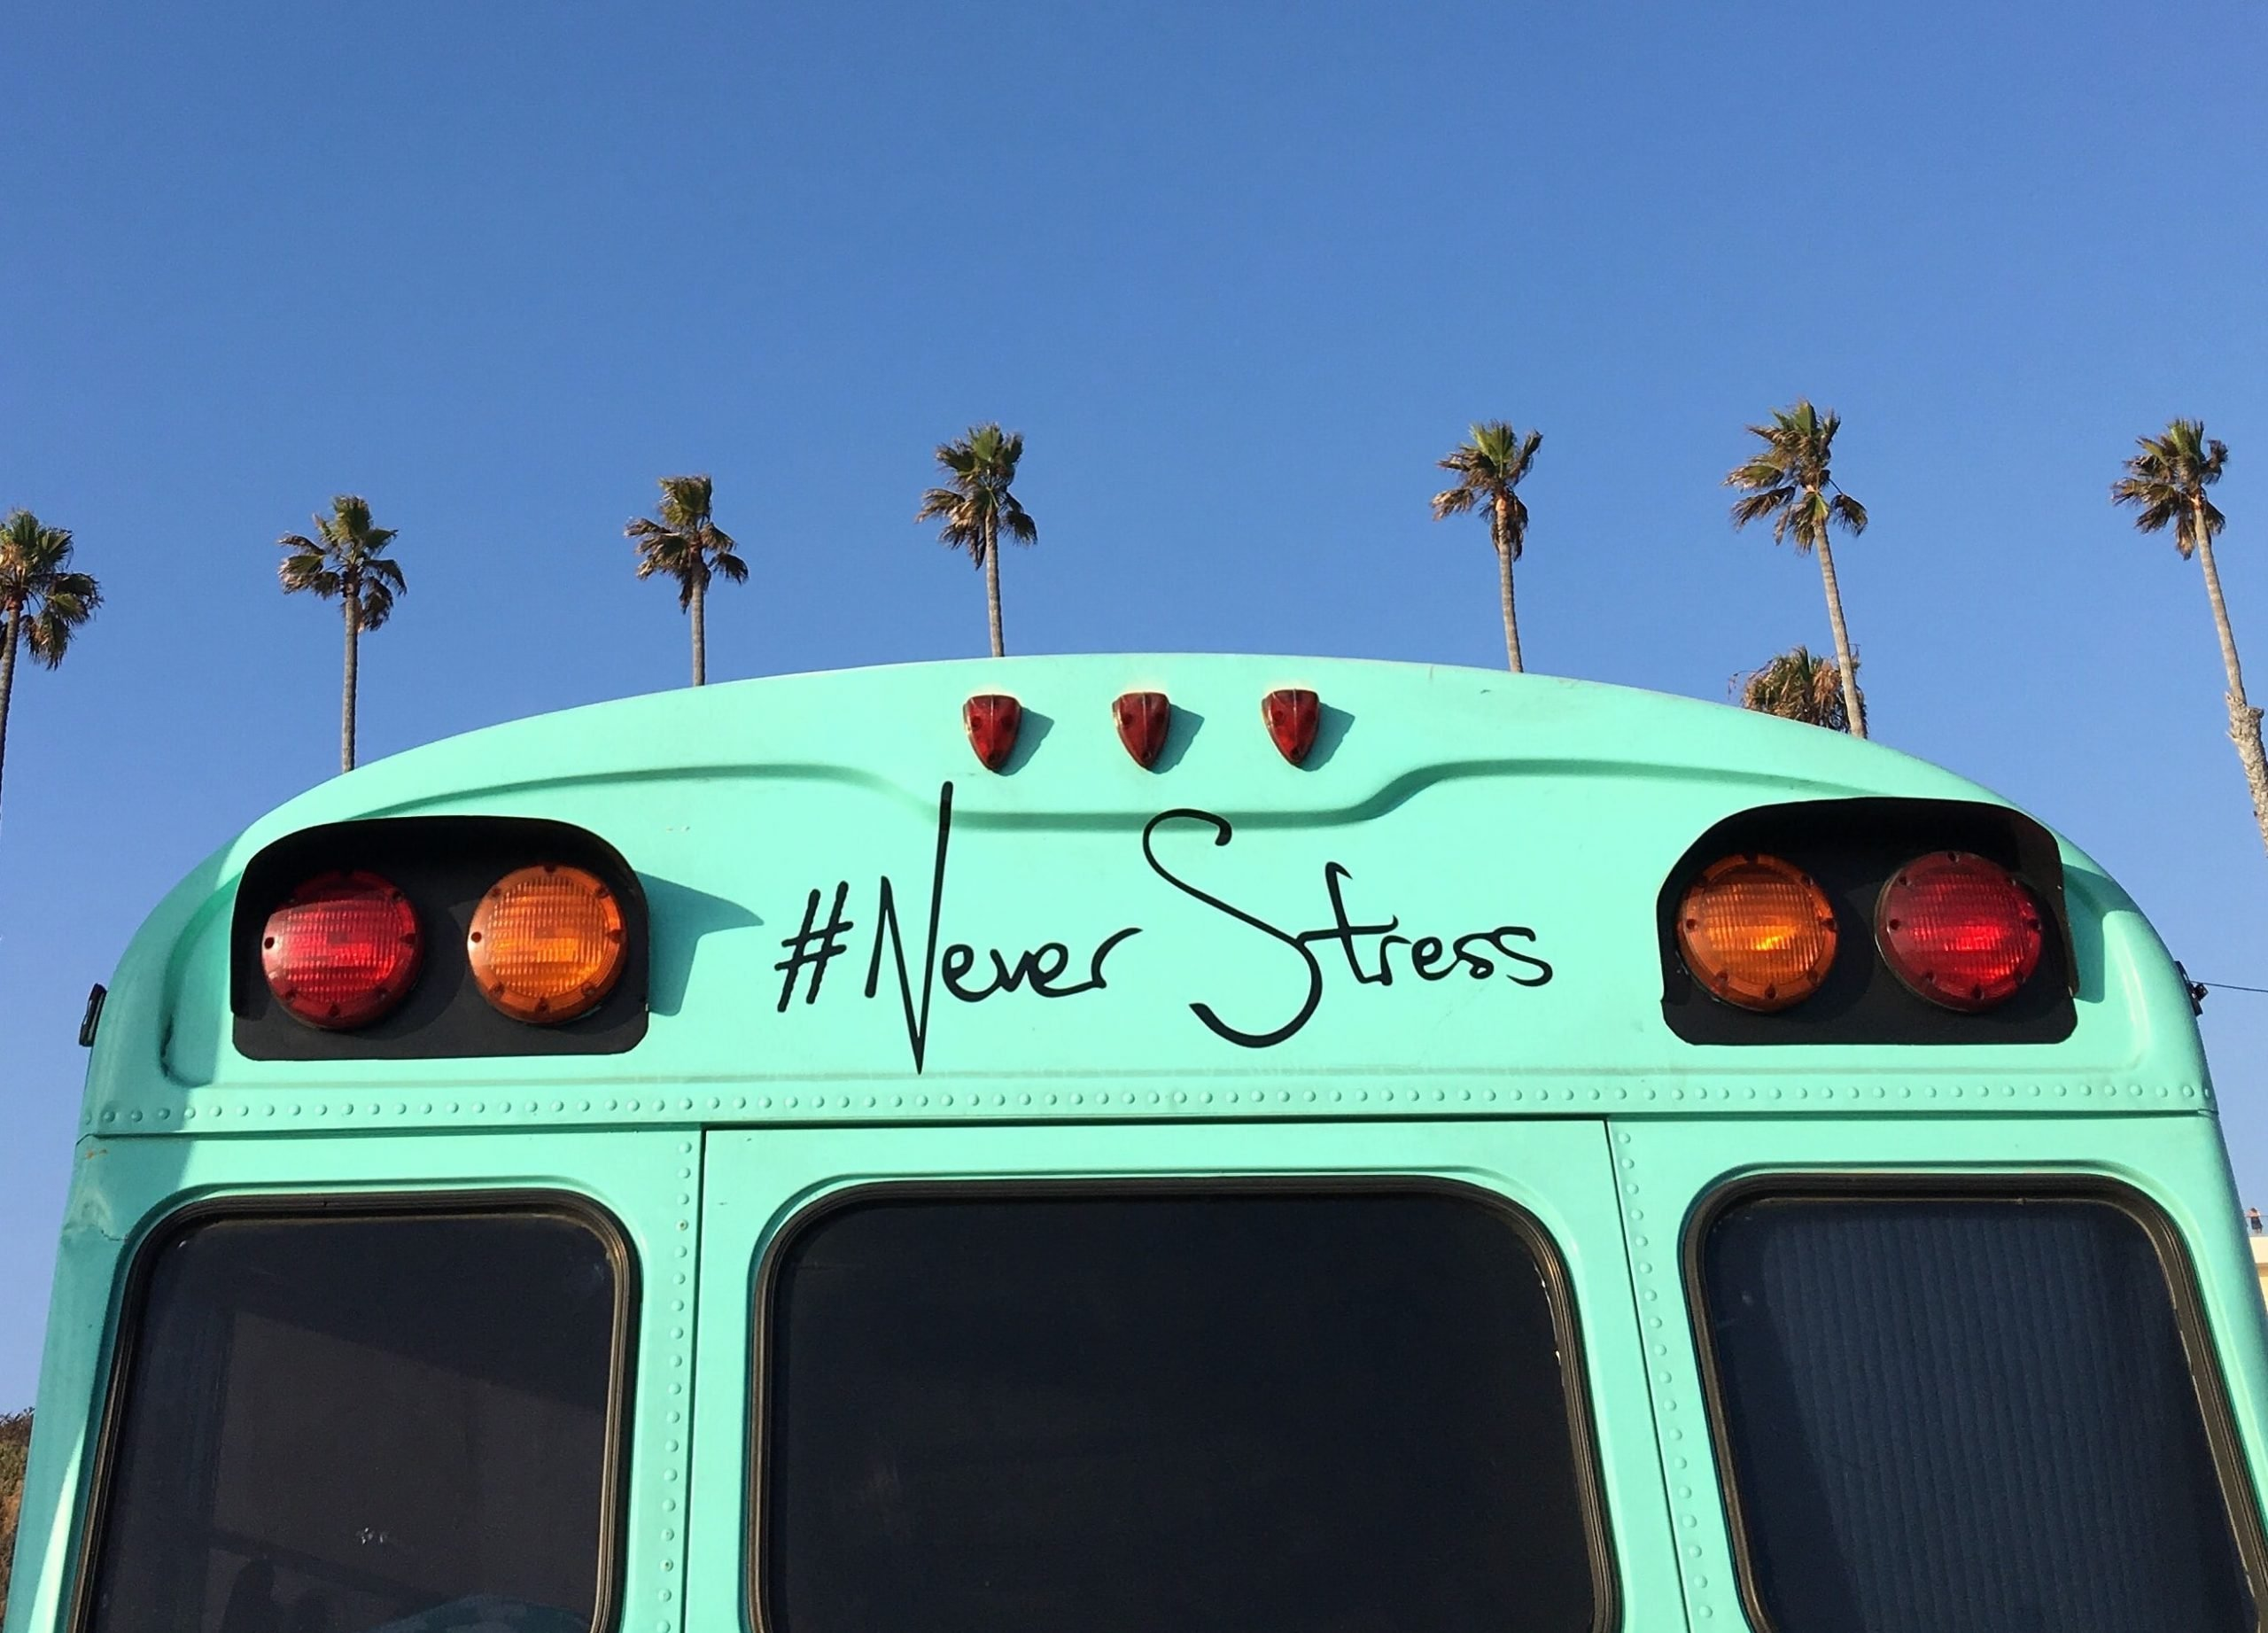 Bus with text '#Never Stress'